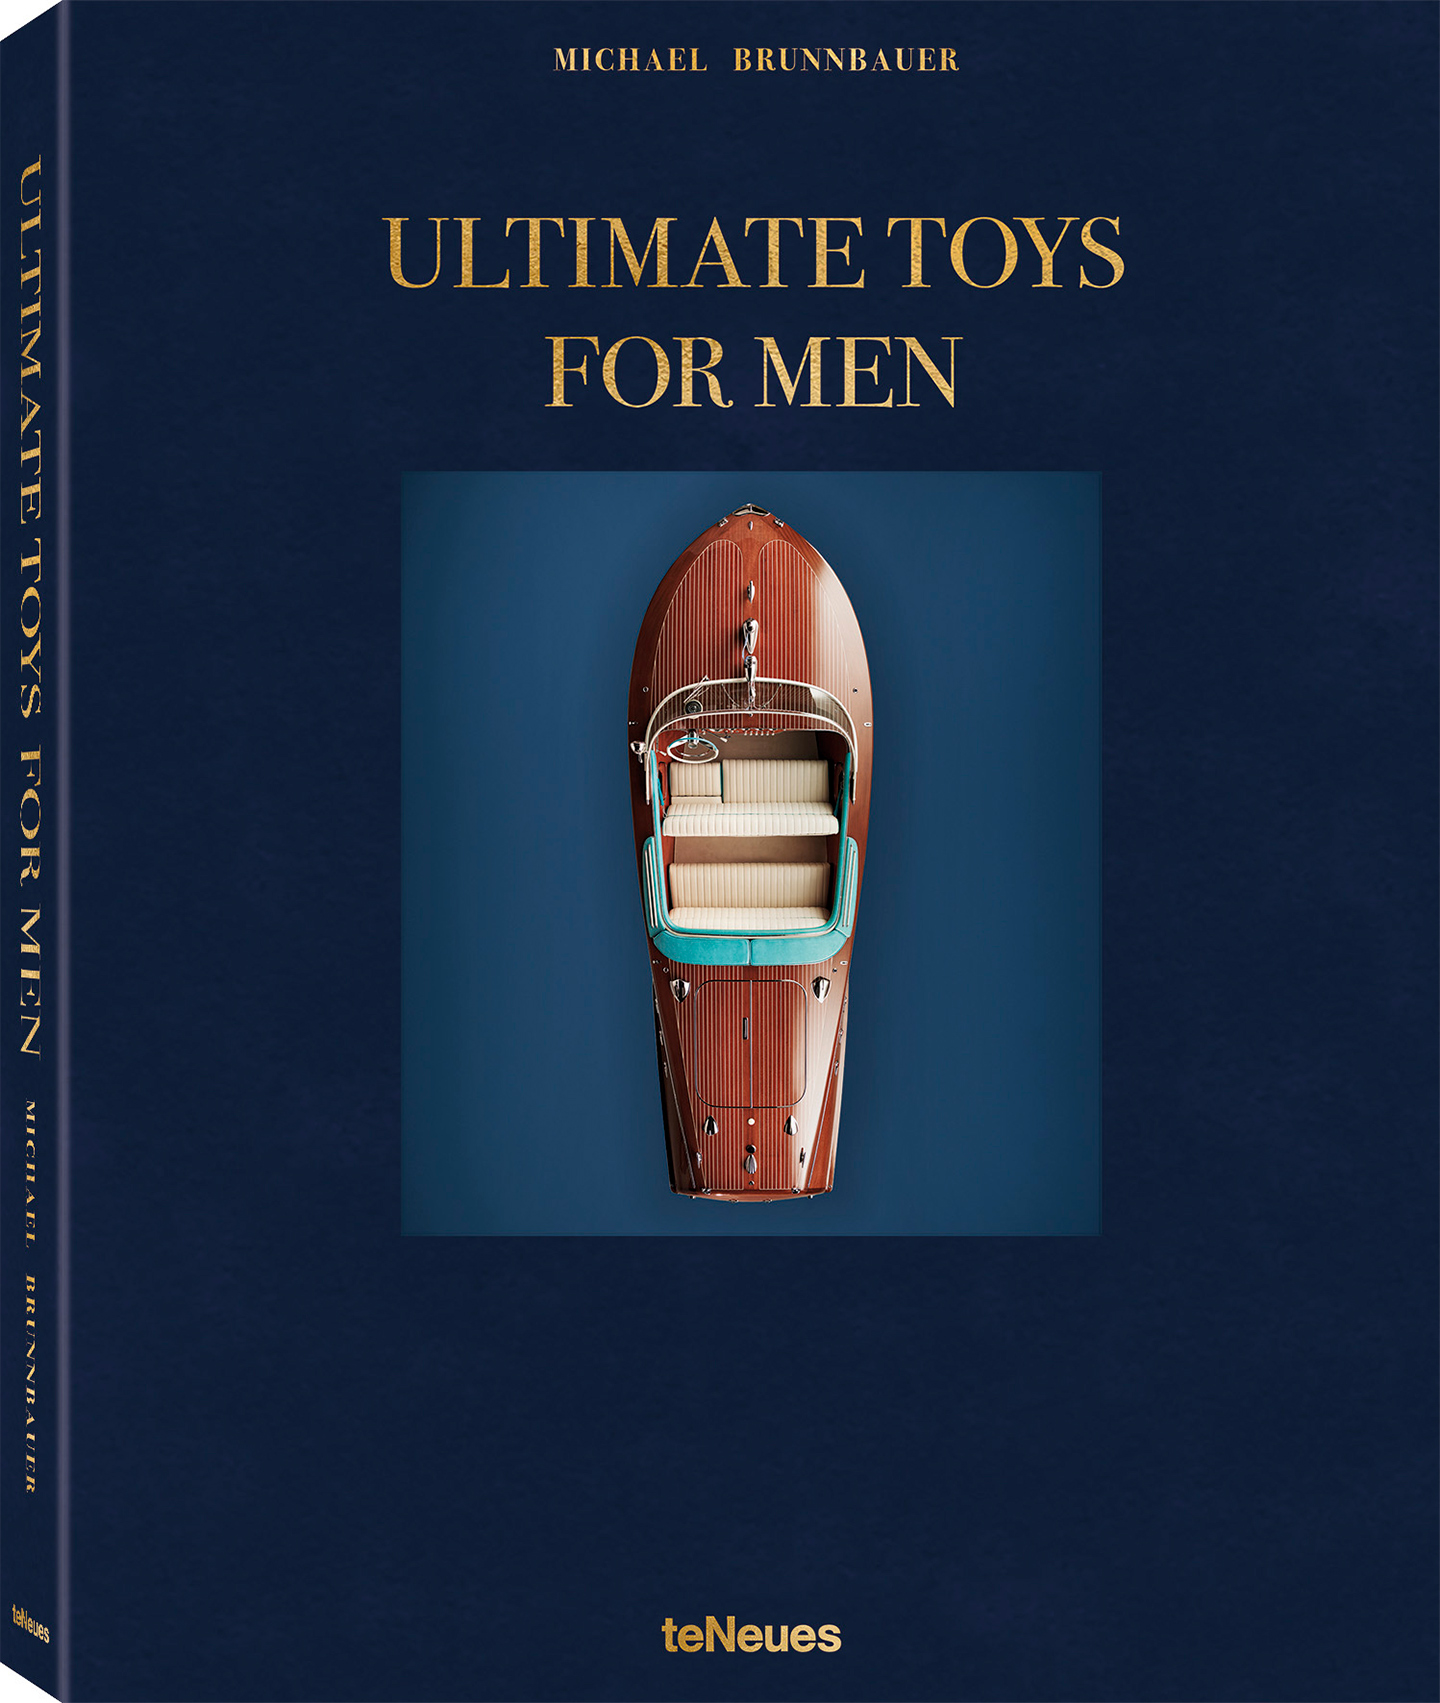 Play With the Ultimate Toys for Men